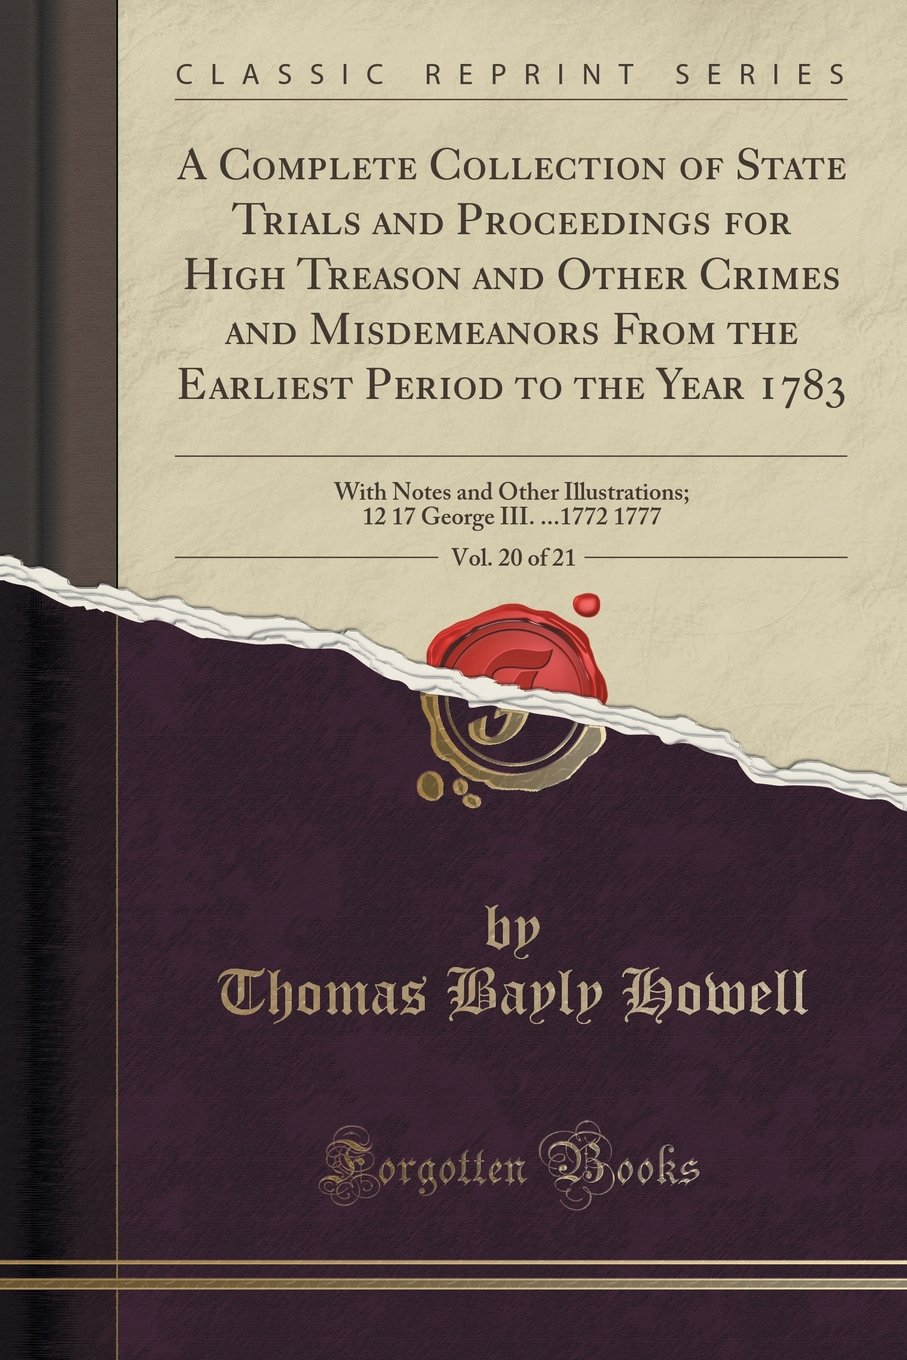 A Complete Collection of State Trials and Proceedings for High Treason and Other Crimes and Misdemeanors From the Earliest Period to the Year 1783, ... 17 George III. ...1772 1777 (Classic Reprint) PDF